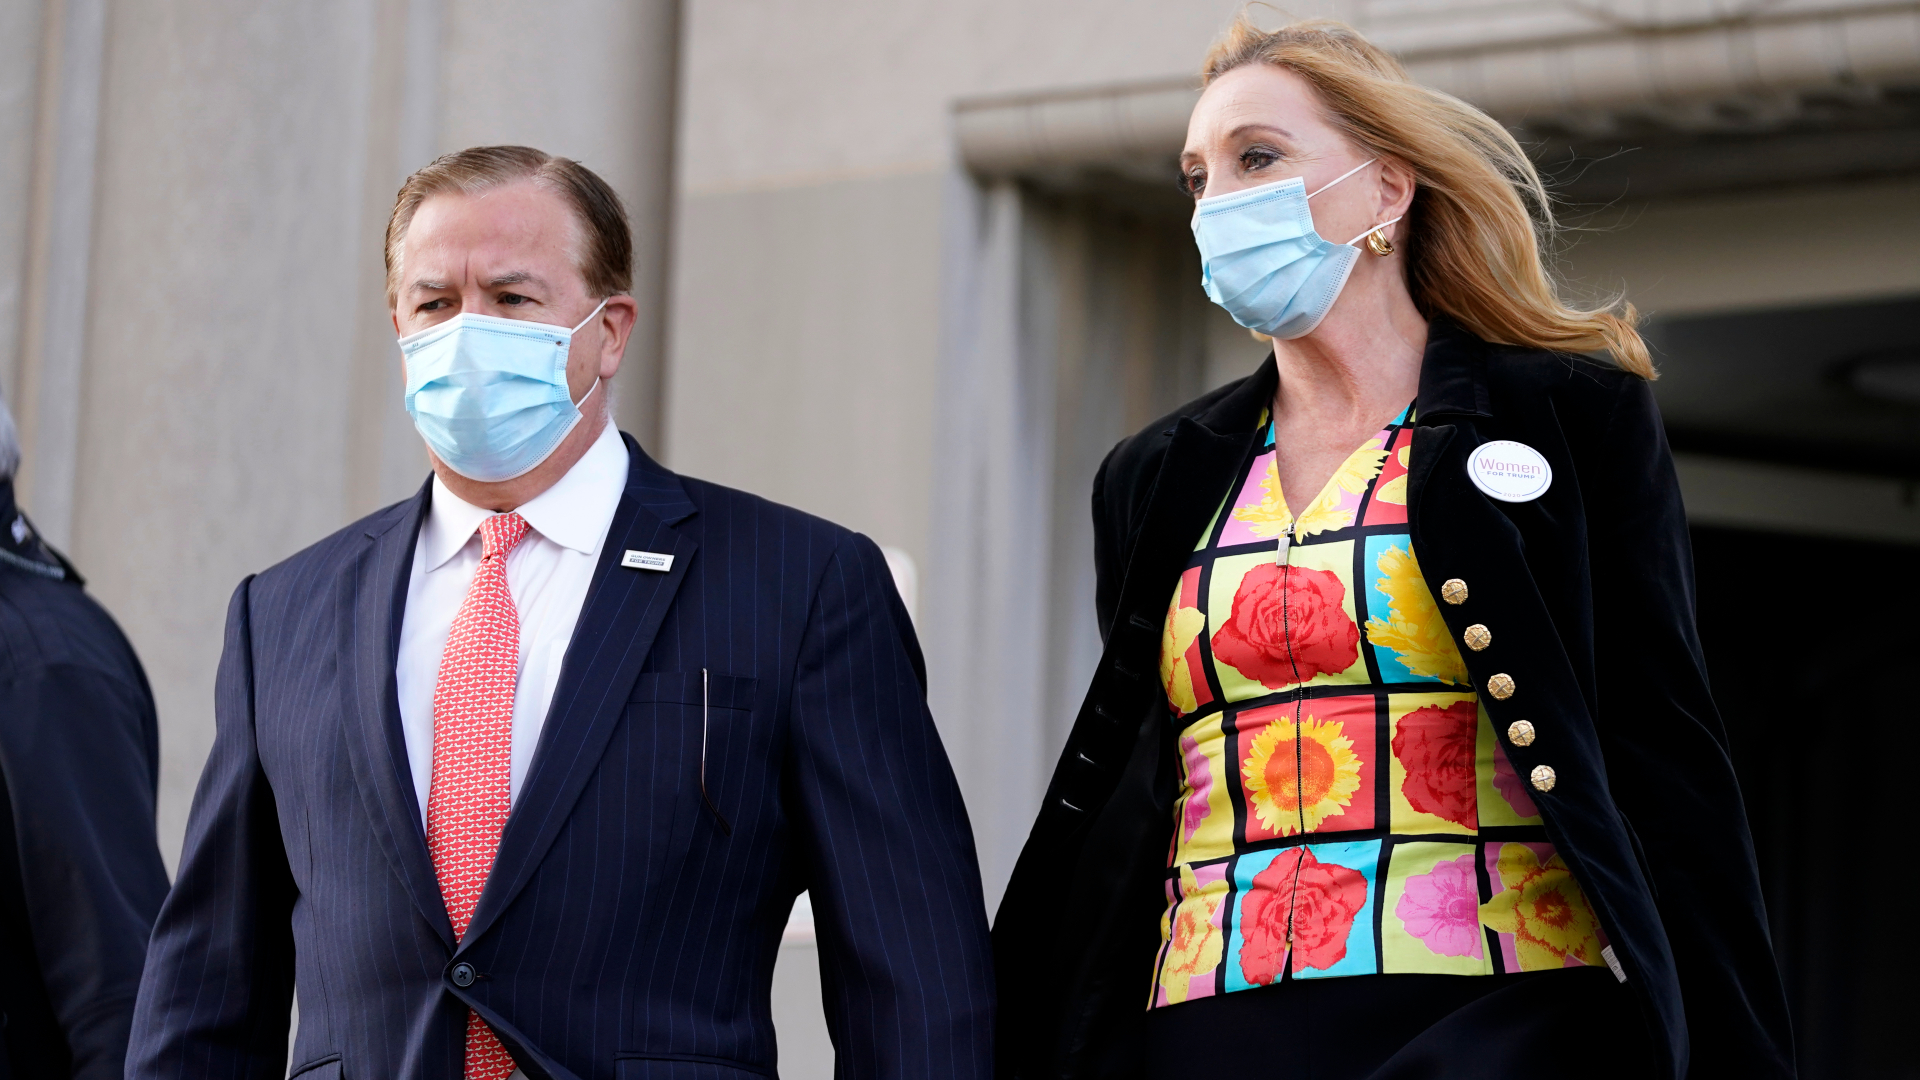 Mark and Patricia McCloskey leave following a court hearing in St. Louis on Oct. 14, 2020. (Jeff Roberson / Associated Press)